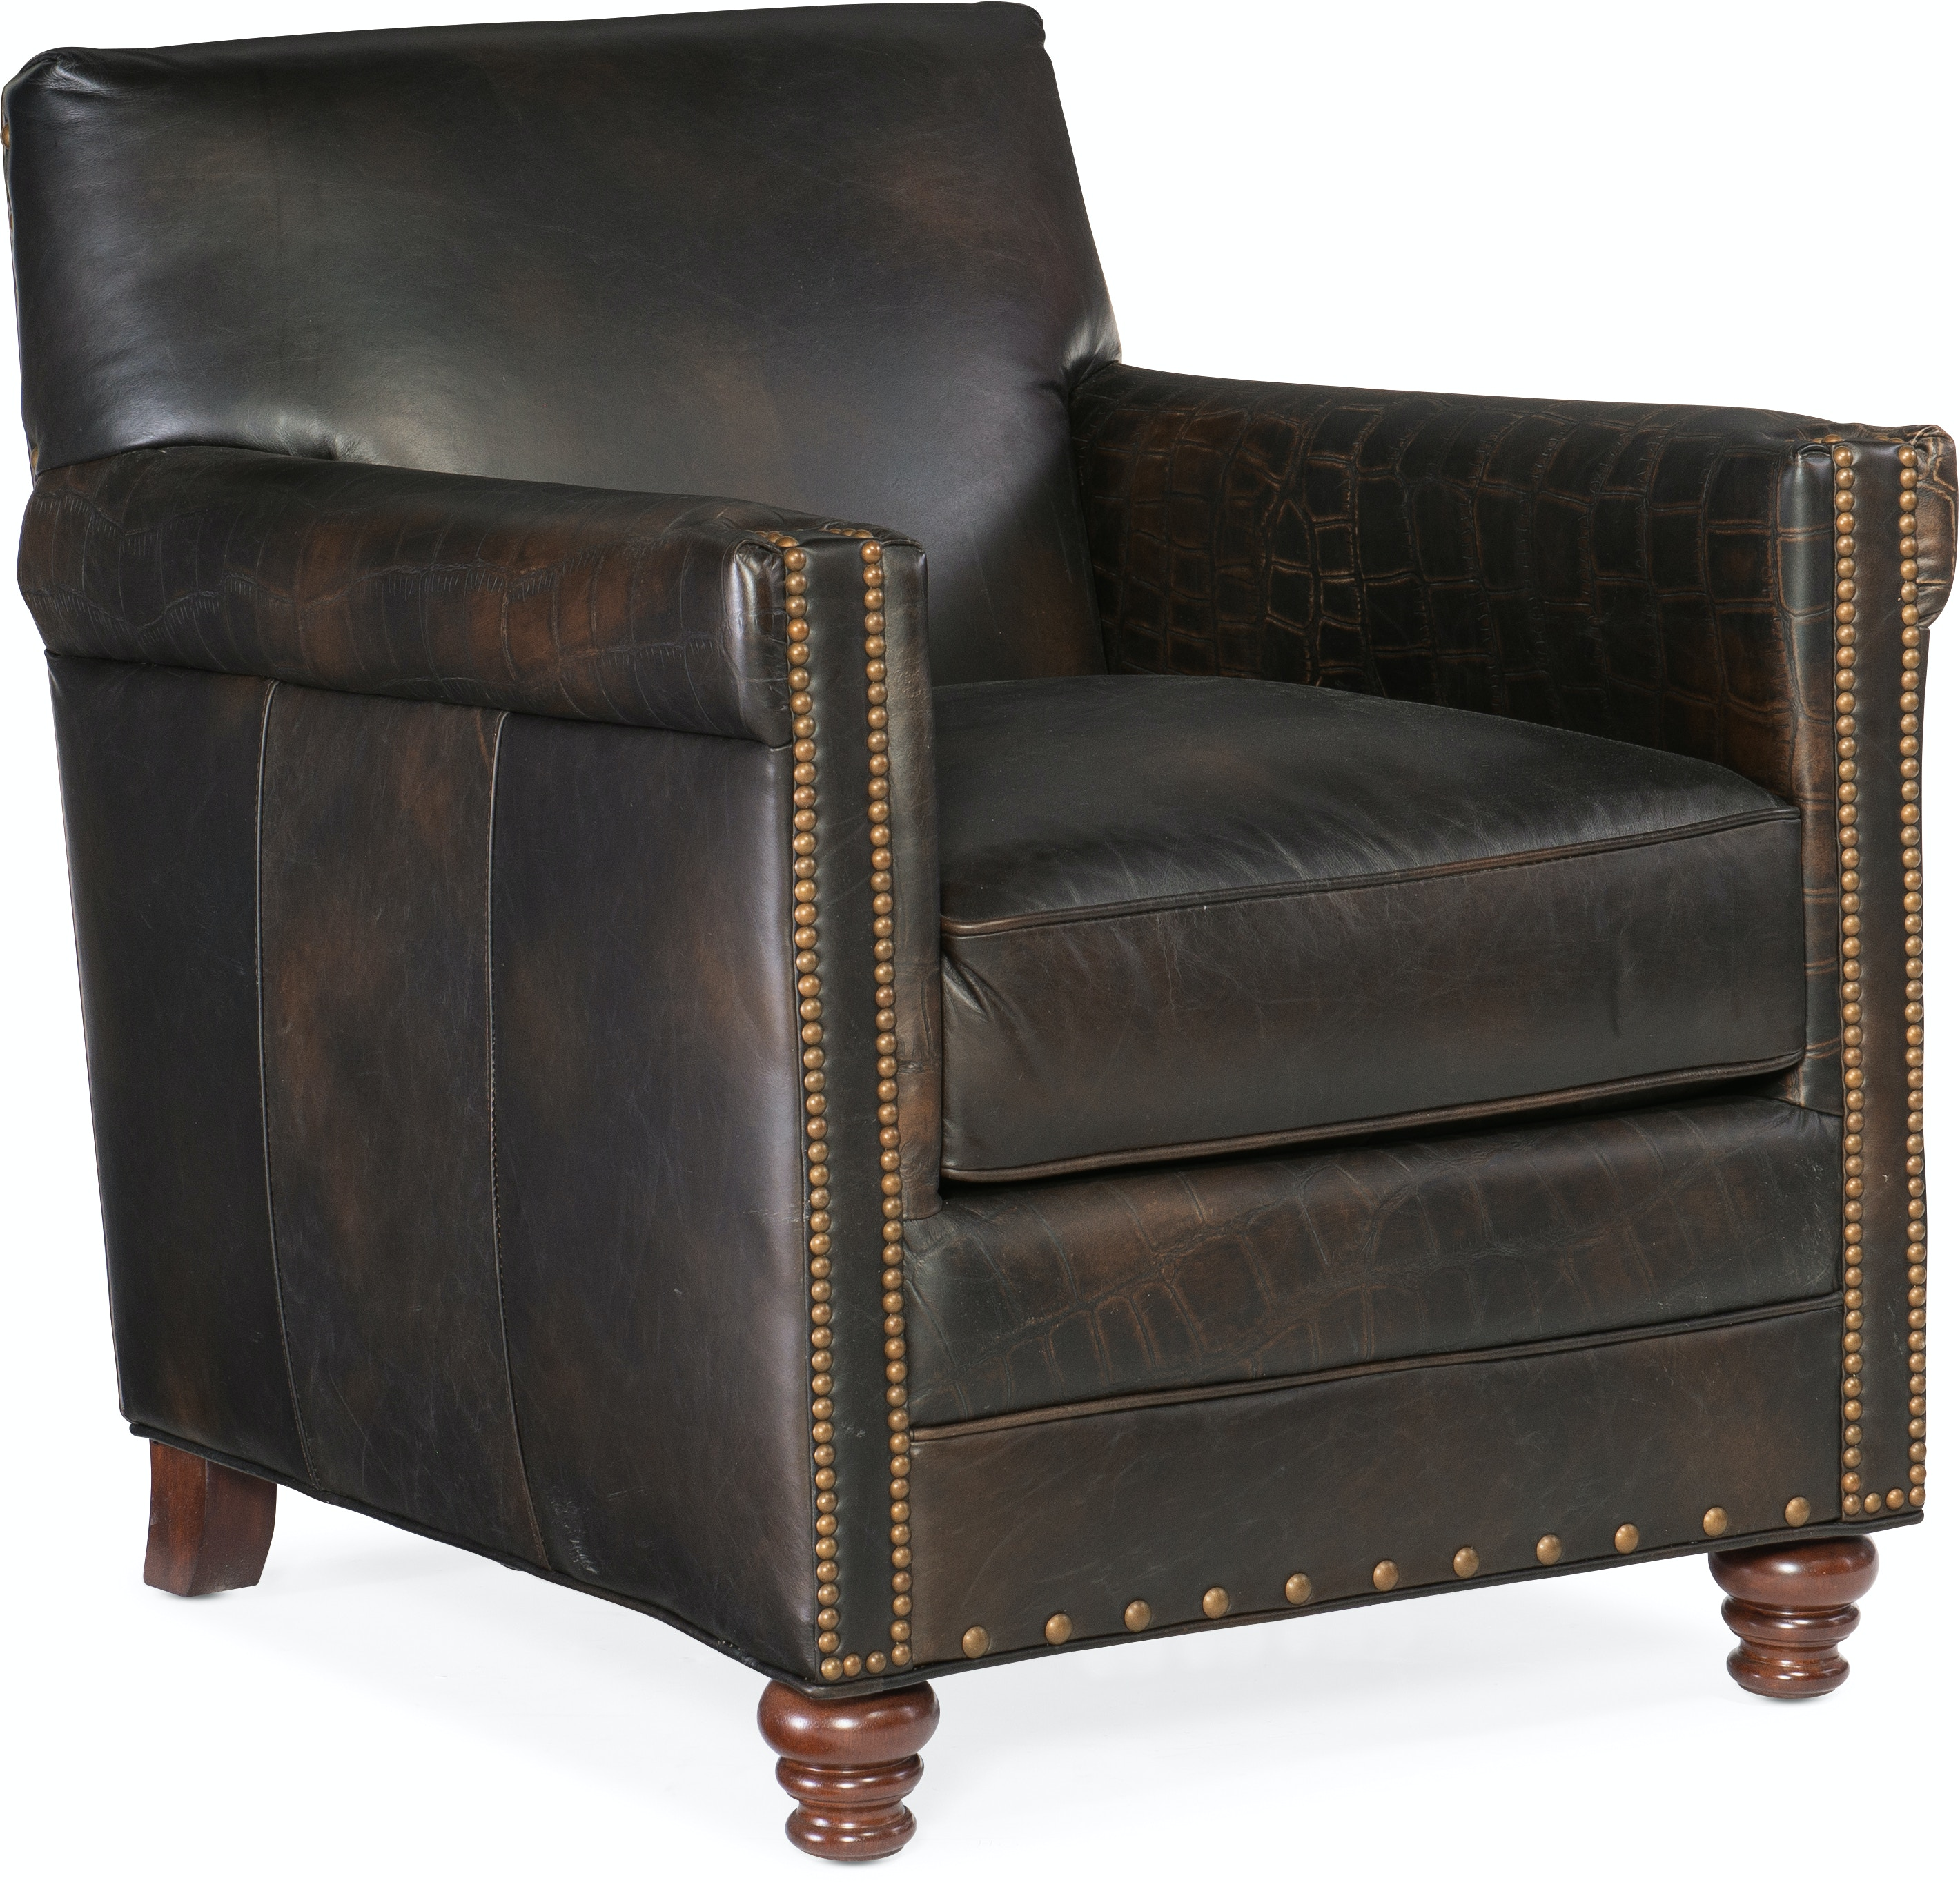 Hooker Furniture Living Room Potter Club Chair CC719 01 089